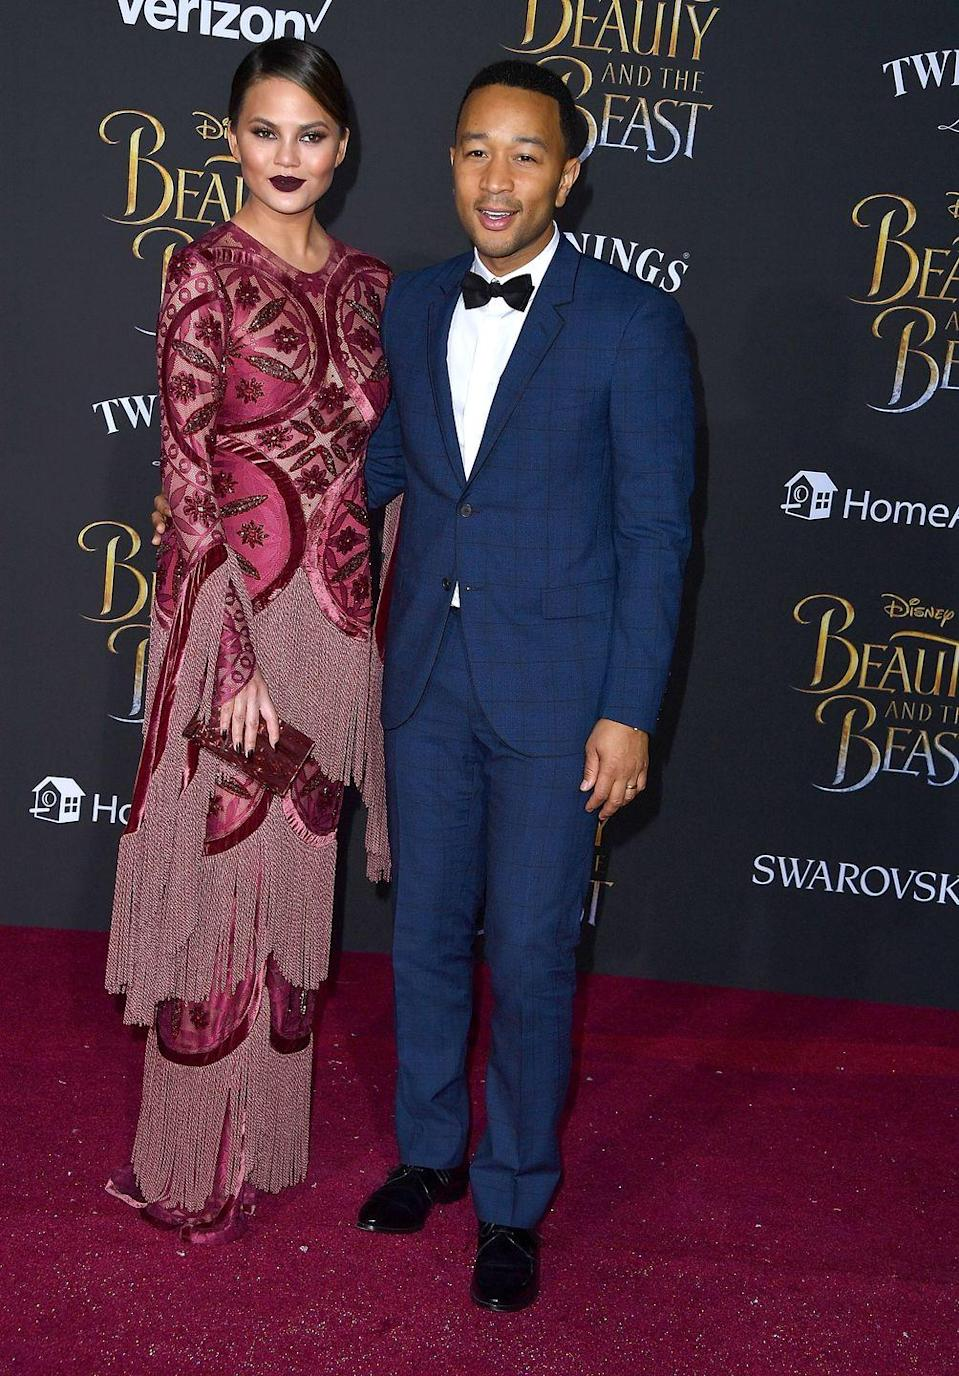 <p>Oozing red carpet glamour at the Beauty and the Beast premiere.</p>